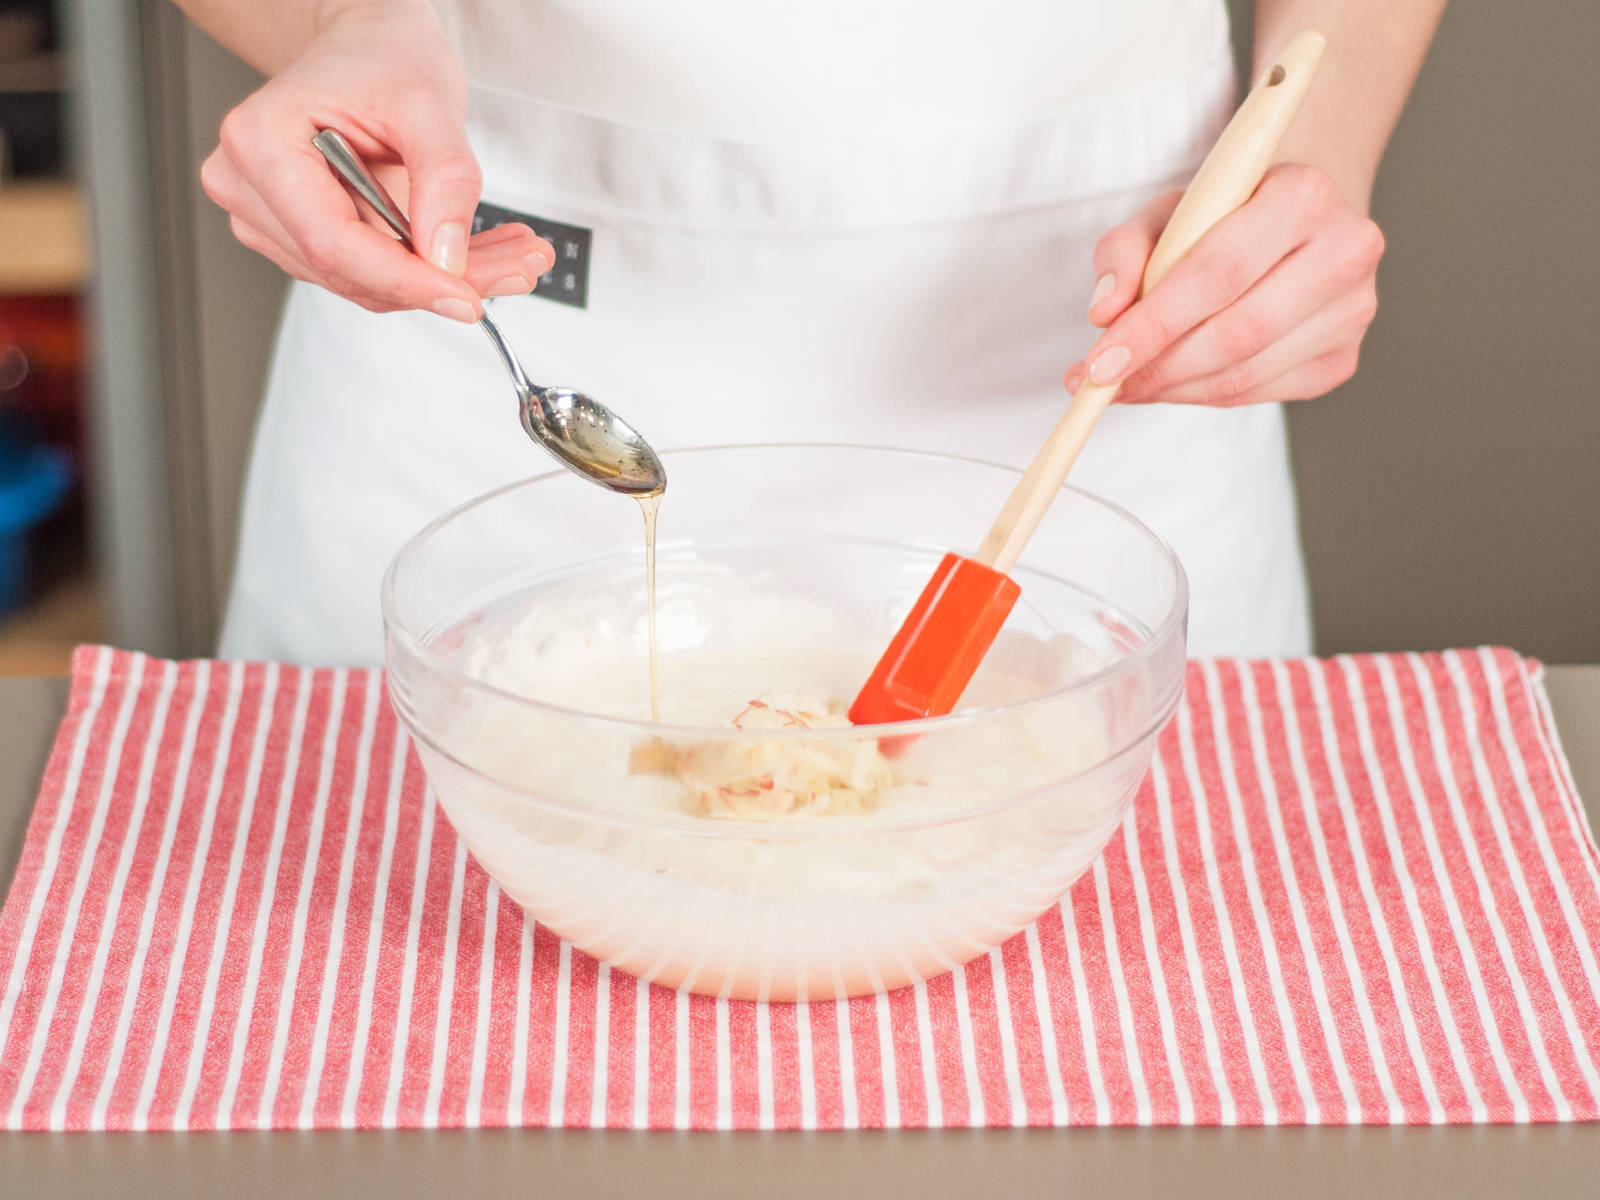 Grate apple into the batter and add vanilla extract. Stir to combine.